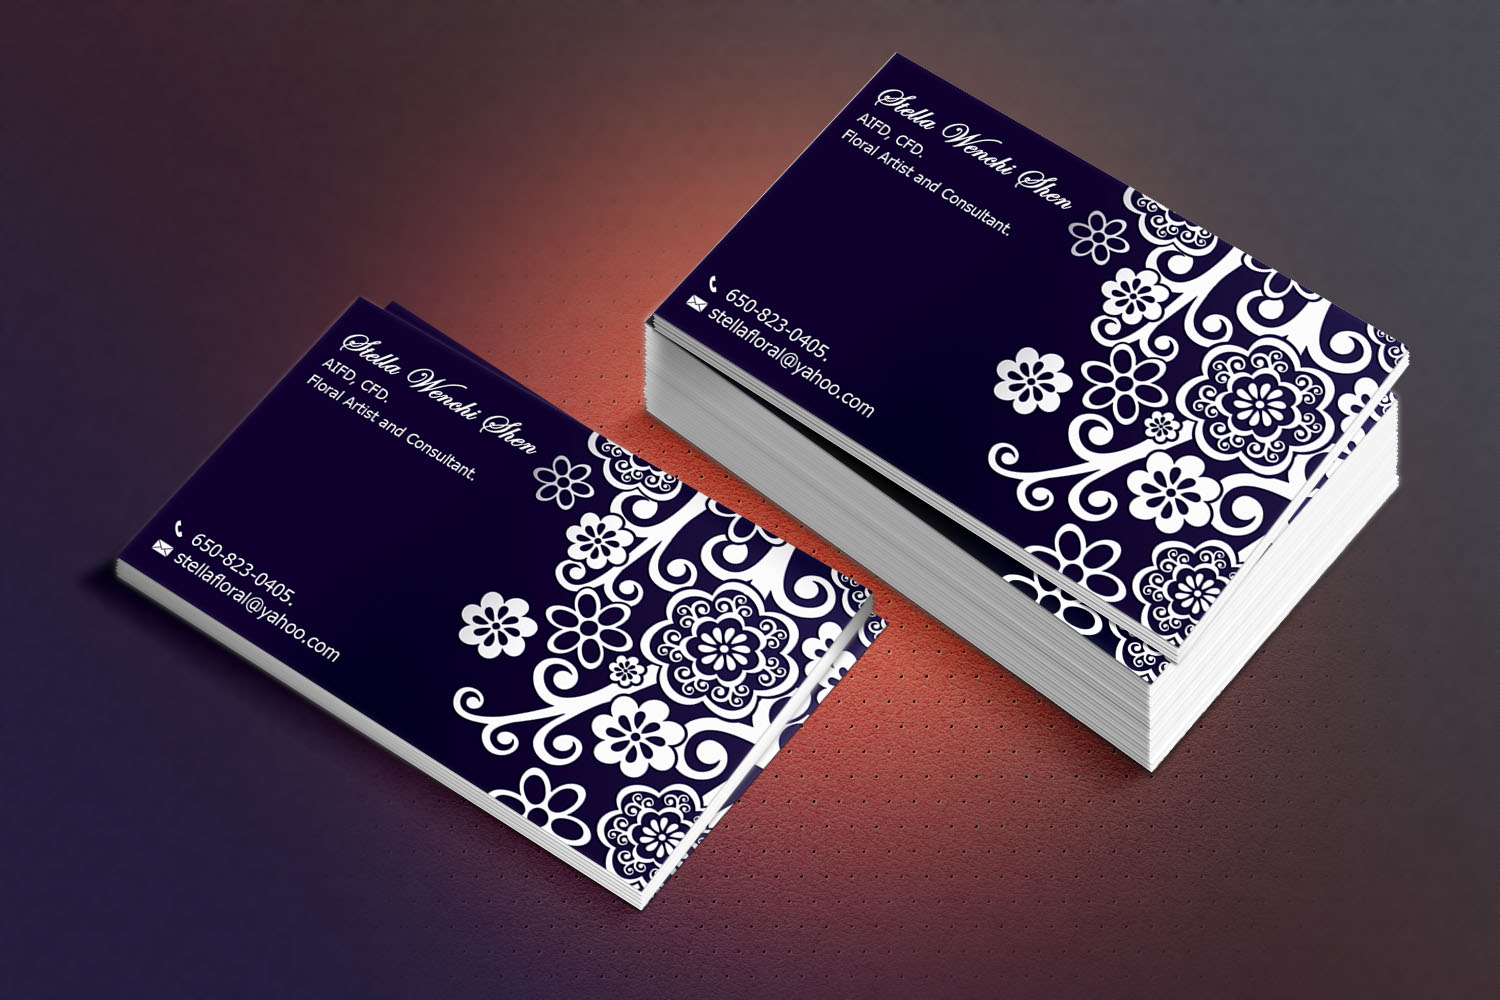 Upmarket Modern Floral Business Card Design For A Company By